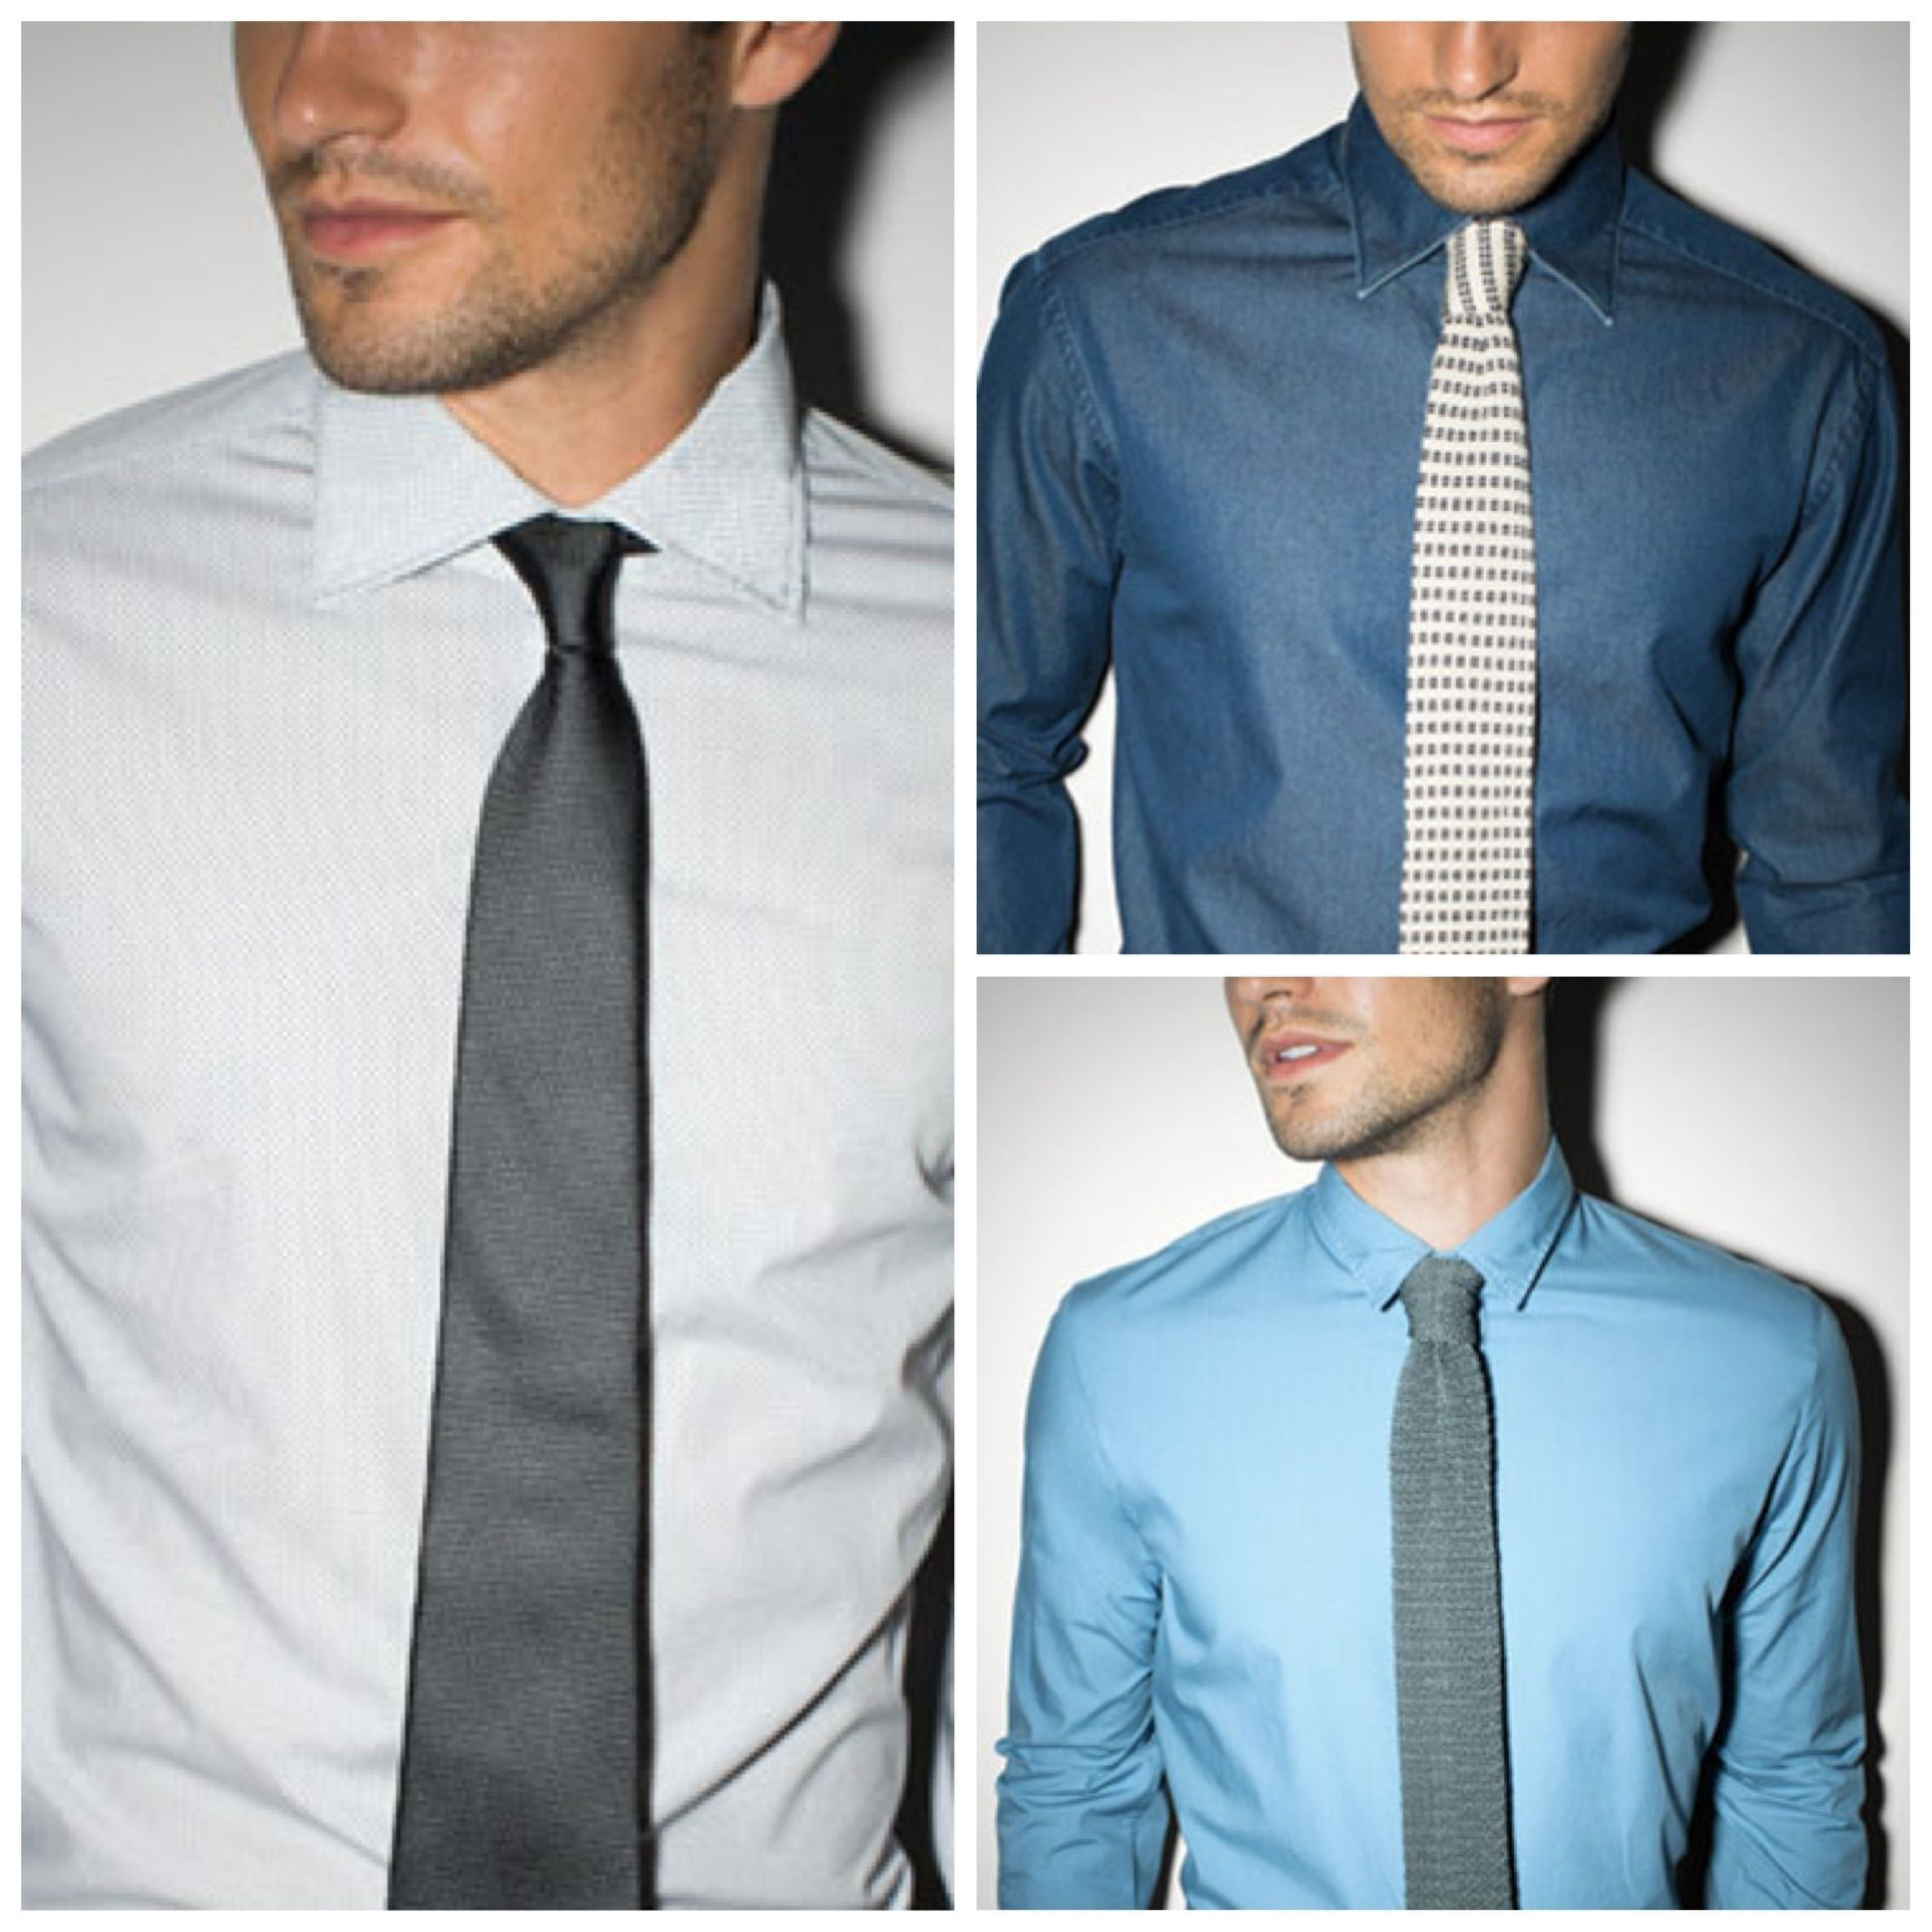 Dress Shirt And Tie Combo